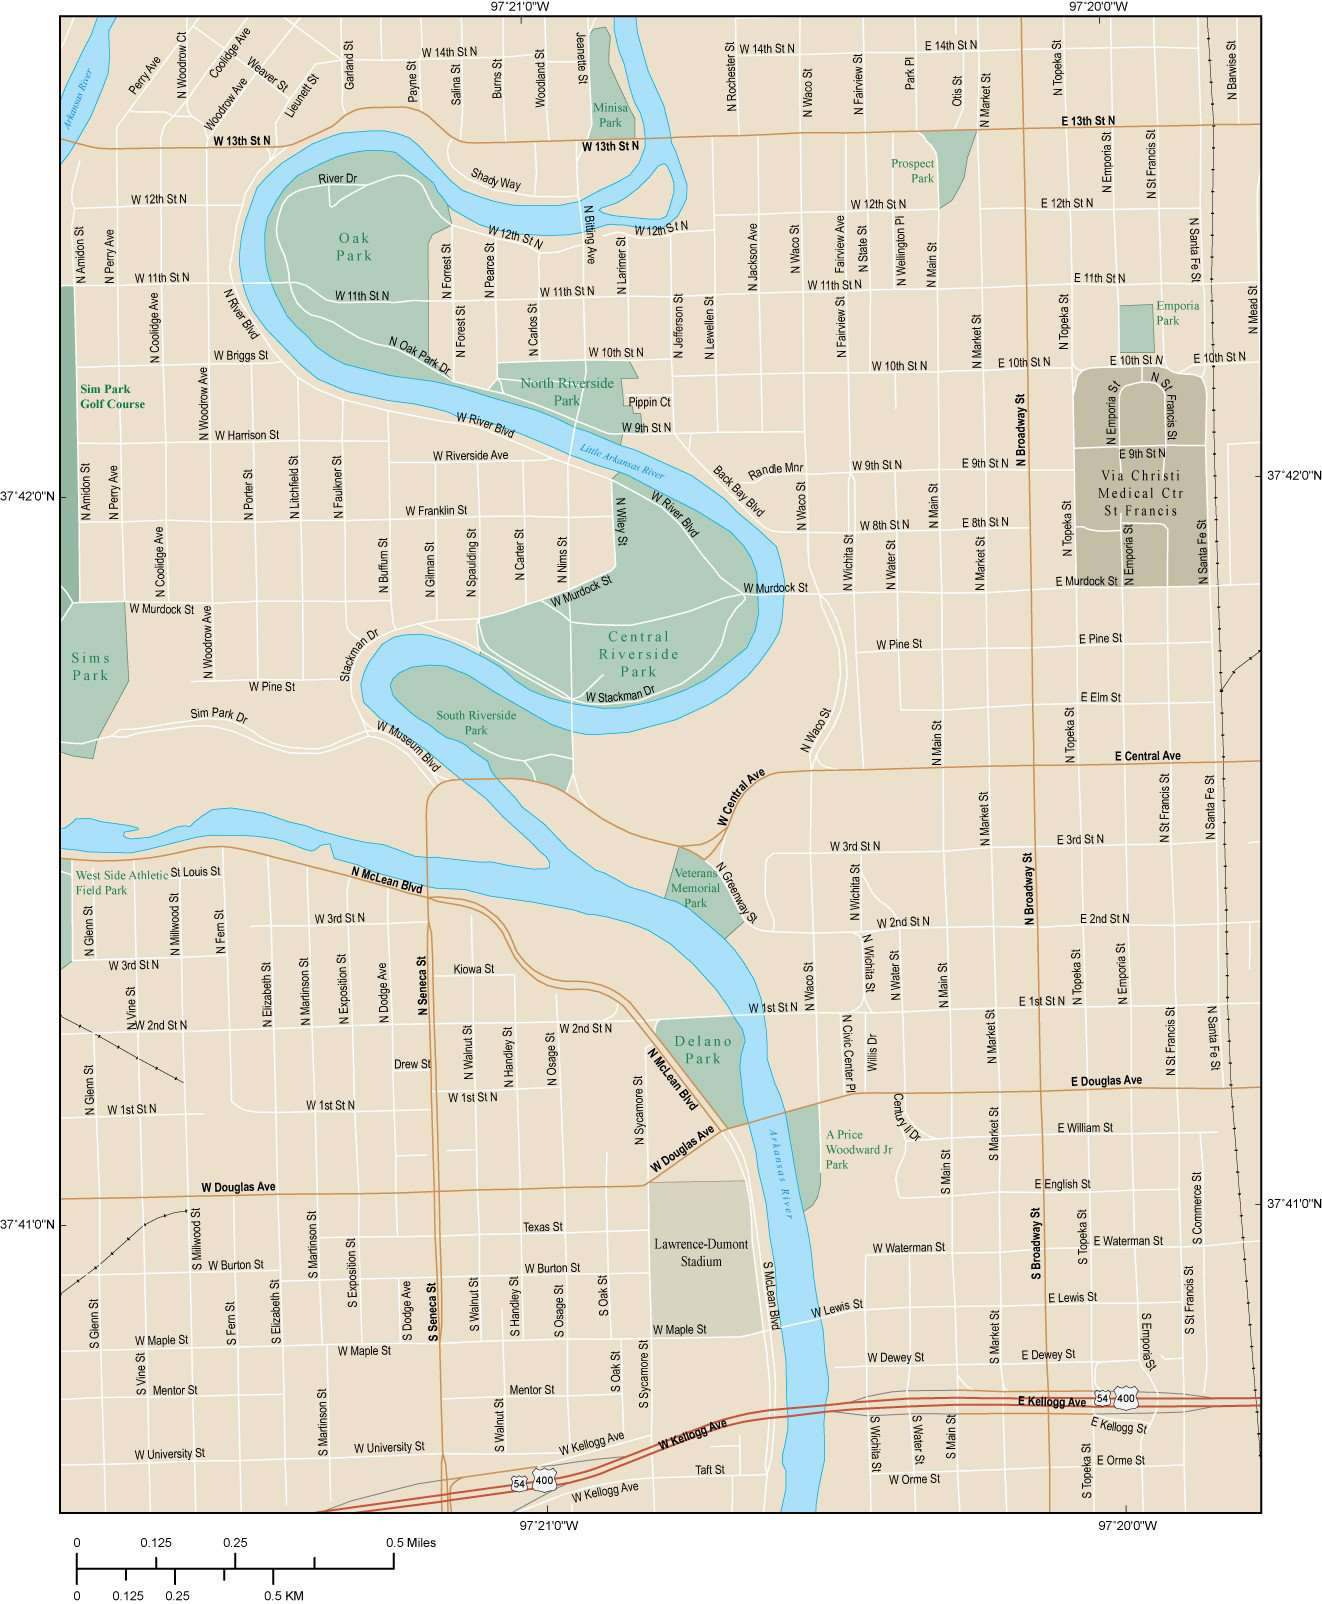 Wichita KS Map - Downtown - 4 square miles - with Local Streets on mo map, wy map, oh map, al map, or map, az map, tn map, co map, nm map, ok map, texas map, la map, mi map, mn map, ca map, ma map, wa map, ms map, ne map, ak map,